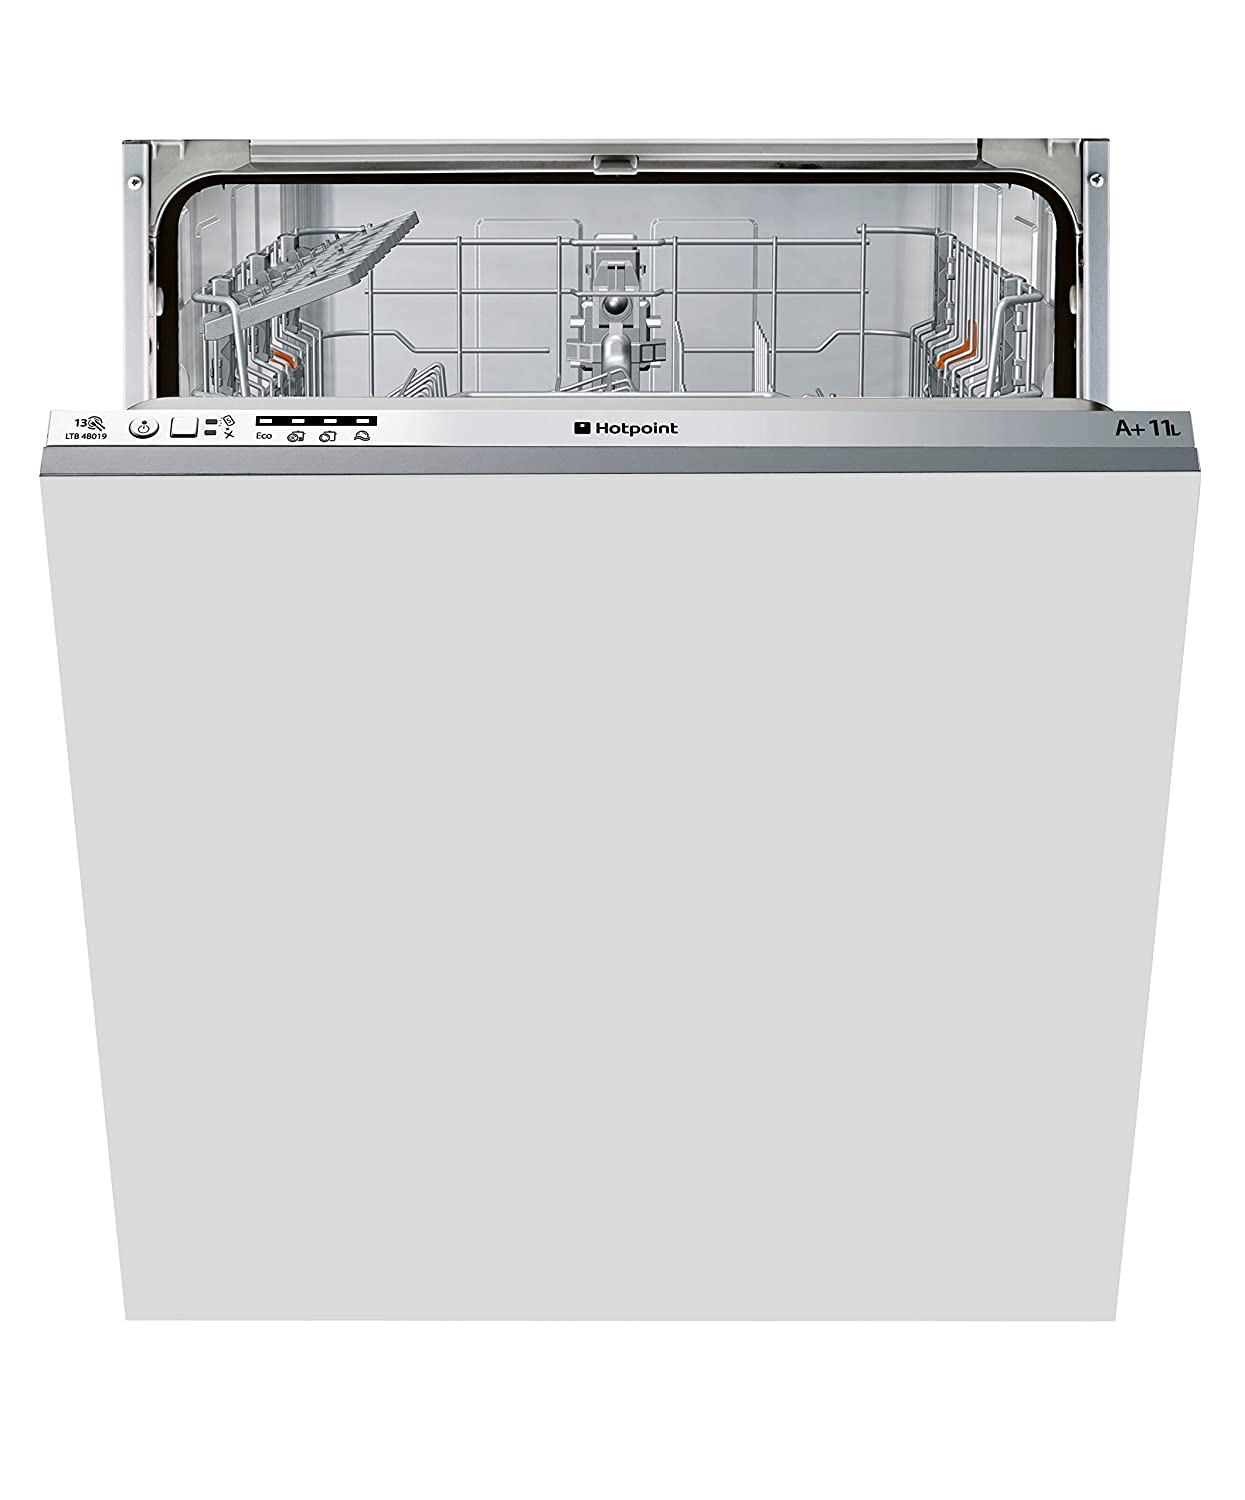 Hotpoint Lavavajillas ltb4b019 integrado: Amazon.es: Grandes ...